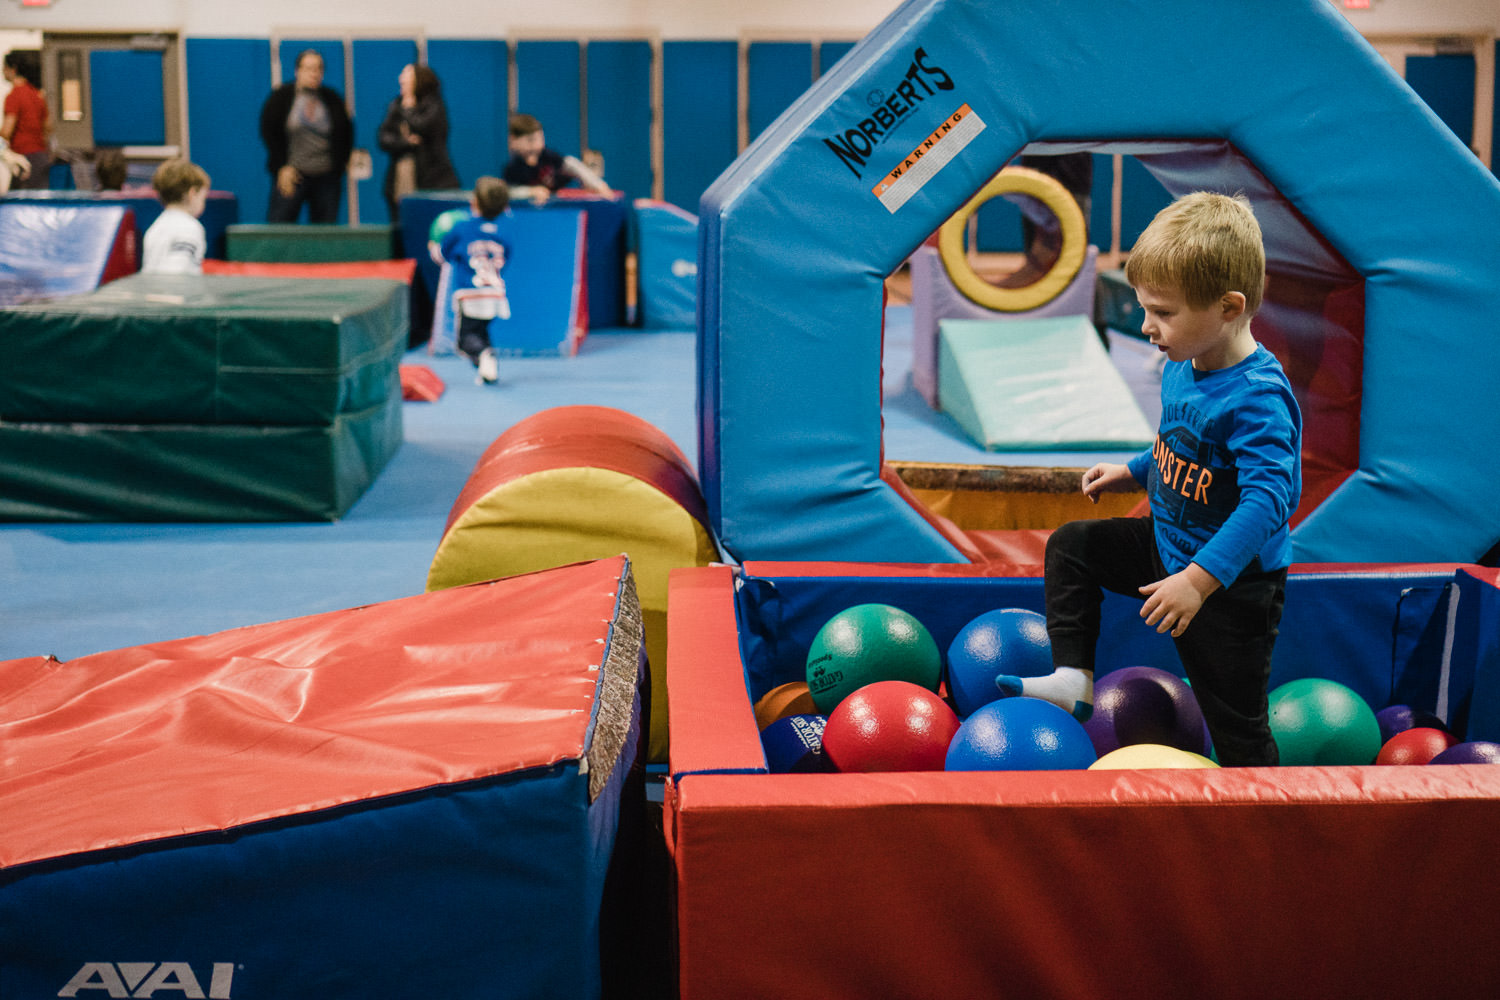 A little boy plays in a ball pit at a gym.